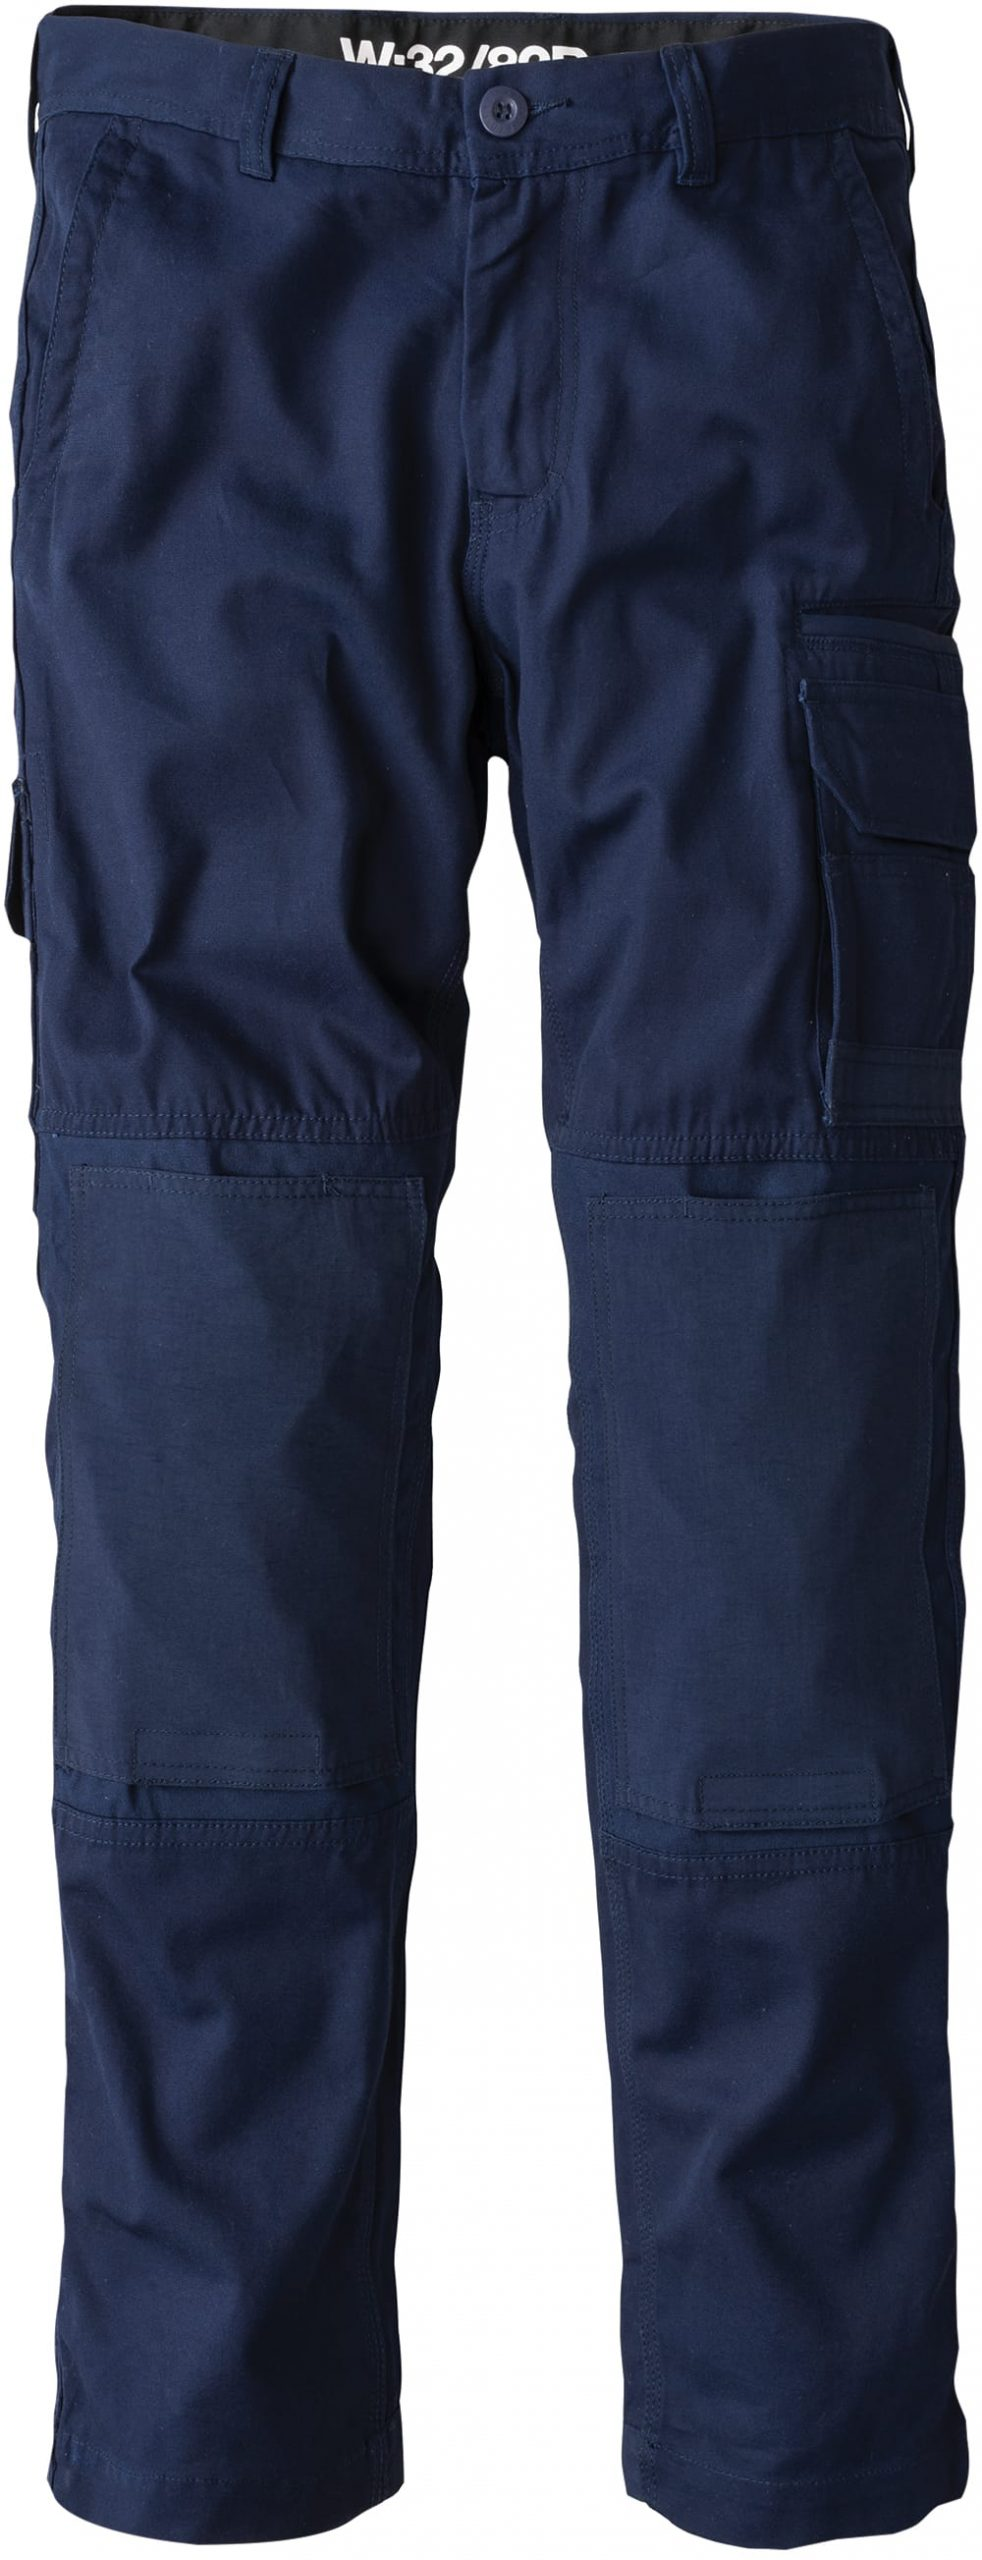 WP-1 FXD Standard weight Cotton Drill Cargo Pants NAVY